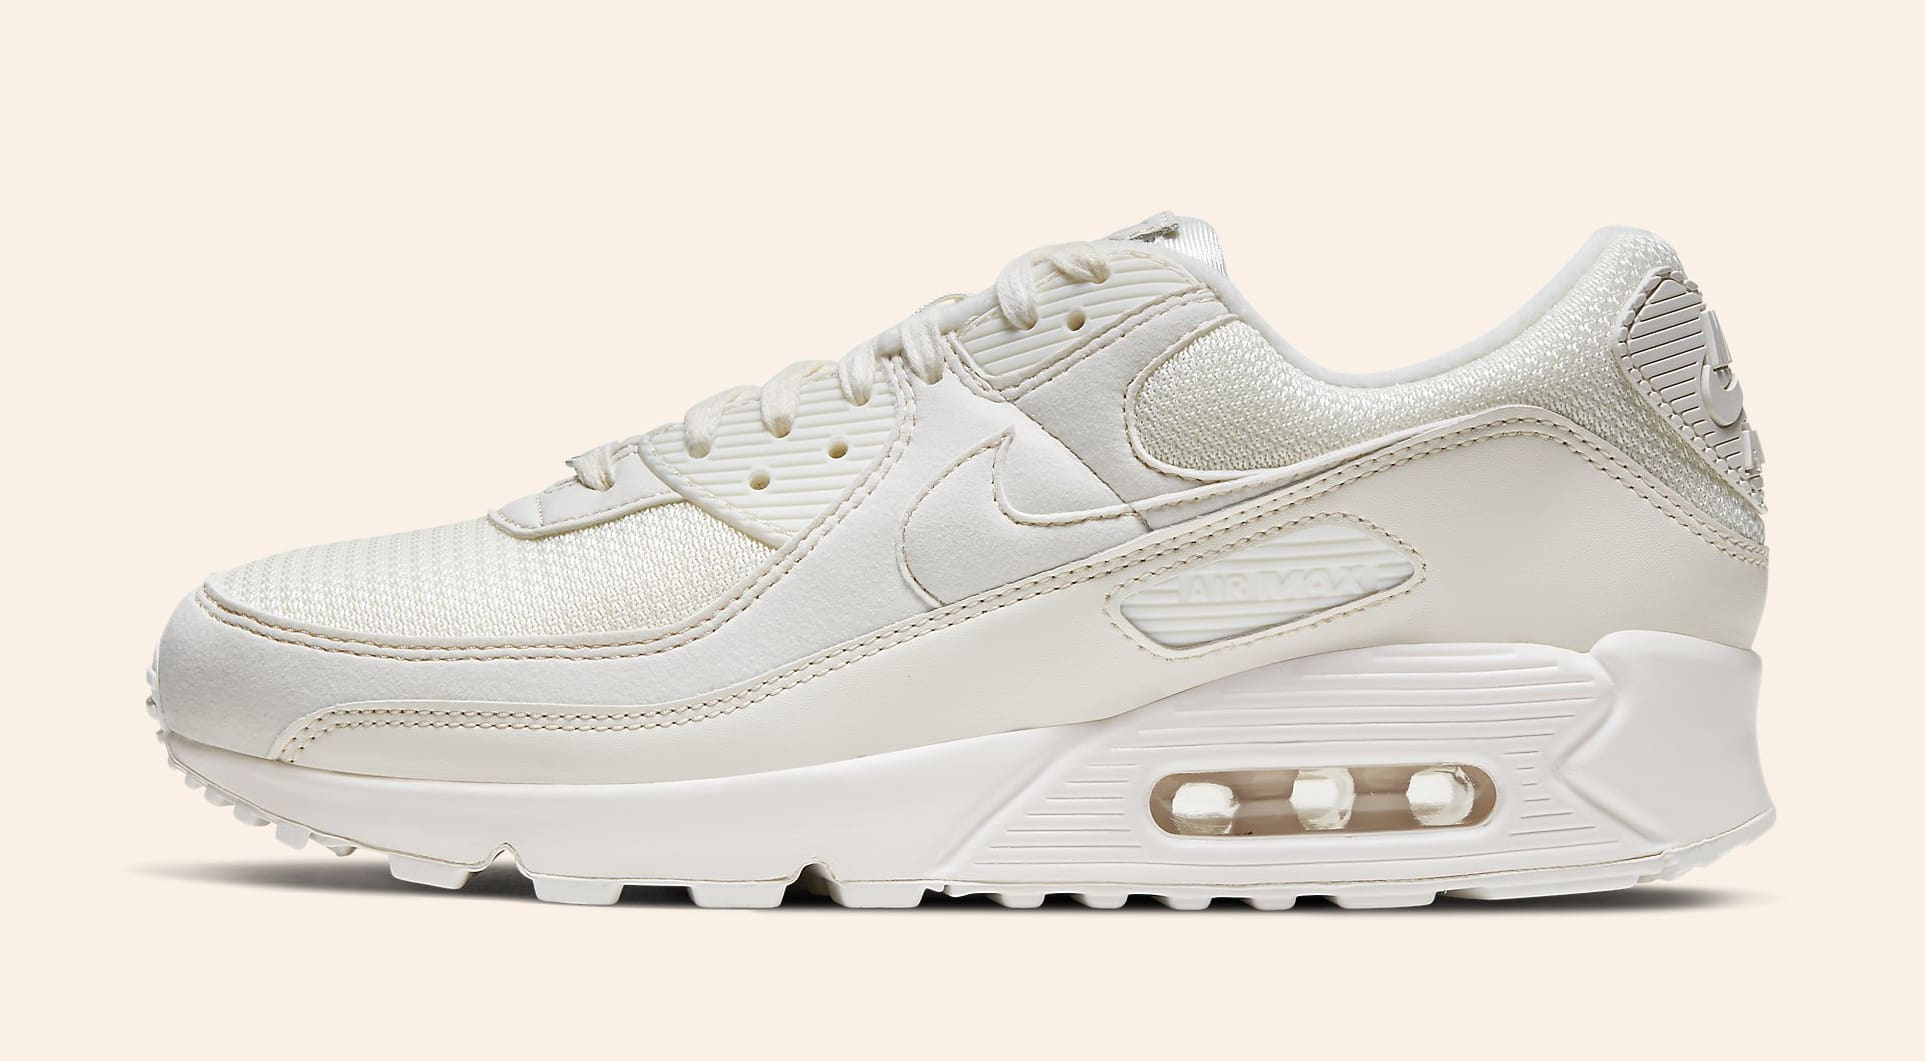 nike-air-max-90-30th-anniversary-sail-ct2007-100-lateral